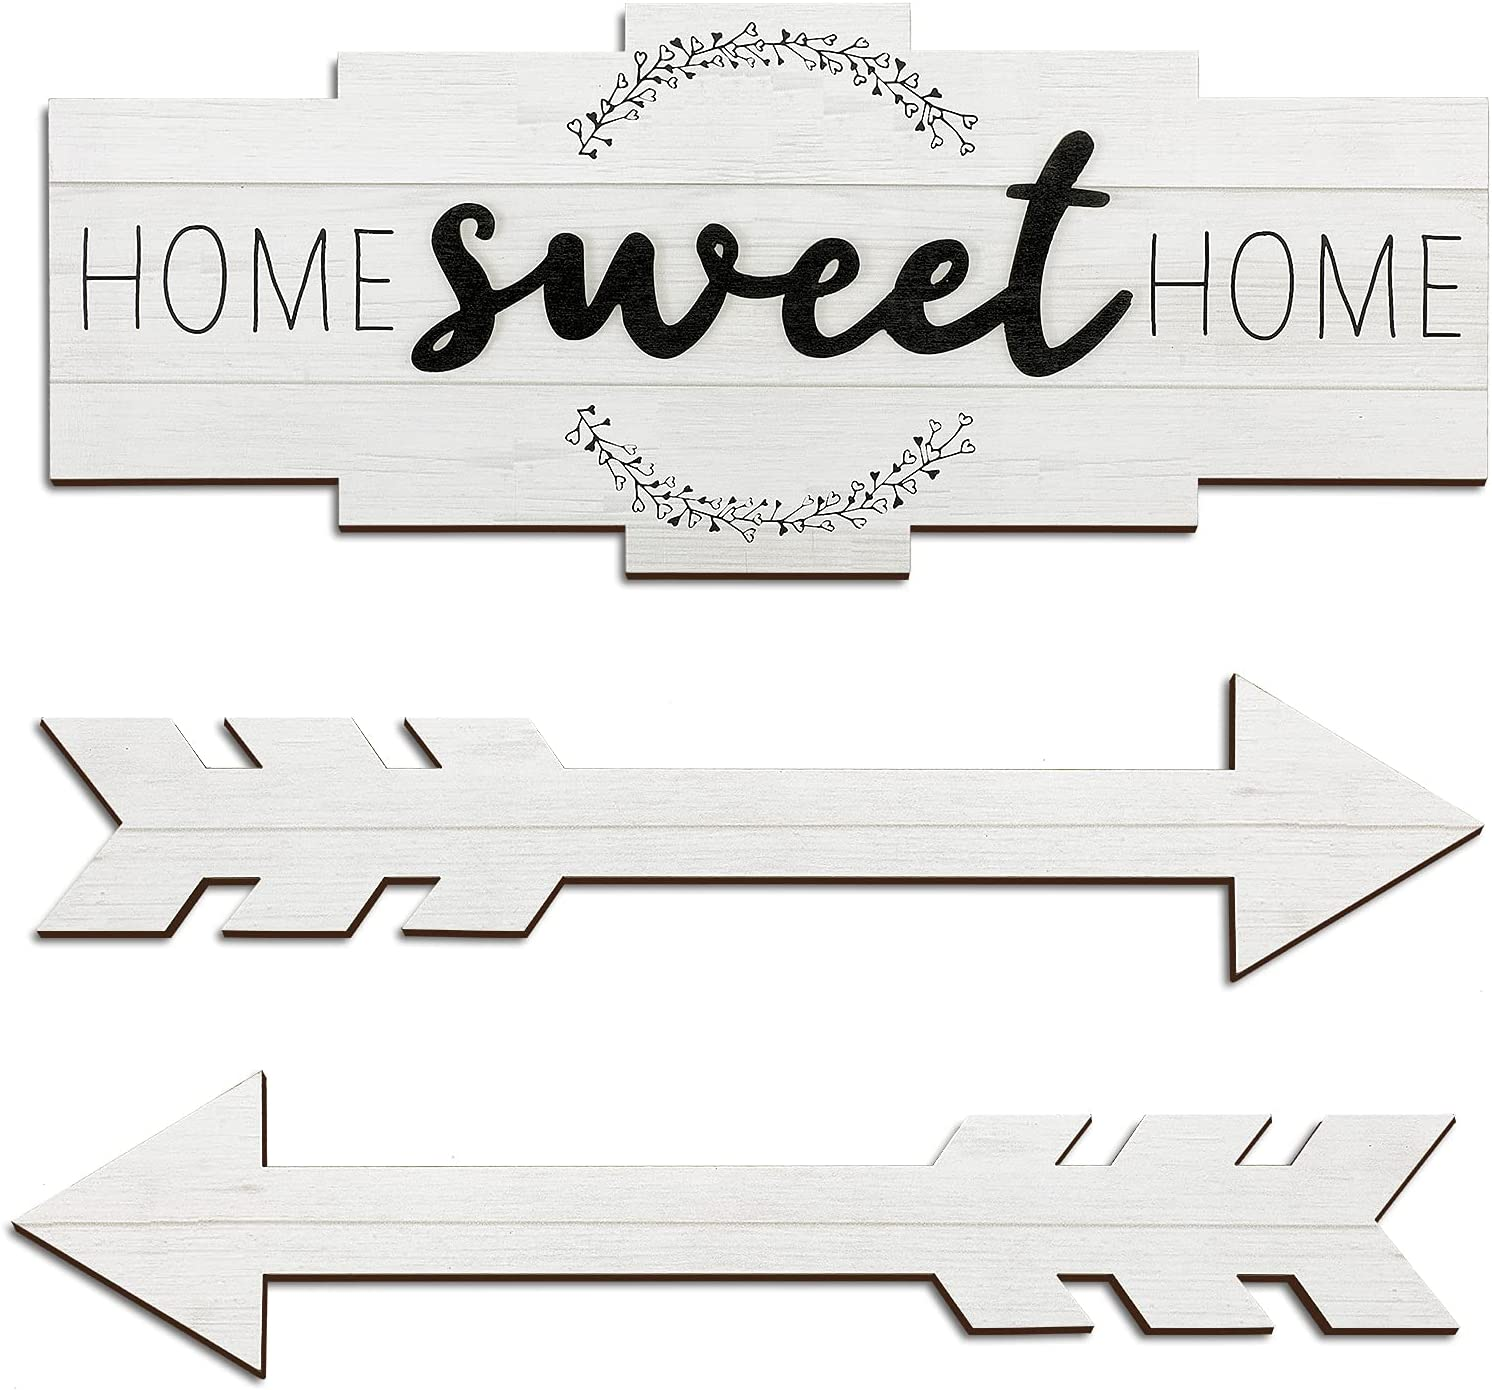 Set of Home Sweet Home Arrow Sign, Rustic Wood Home Wall Decor, Large Farmhouse Arrow Sign Plaque Wall Hanging for Bedroom, Living Room, Party, Wedding Decor (Simple Color)